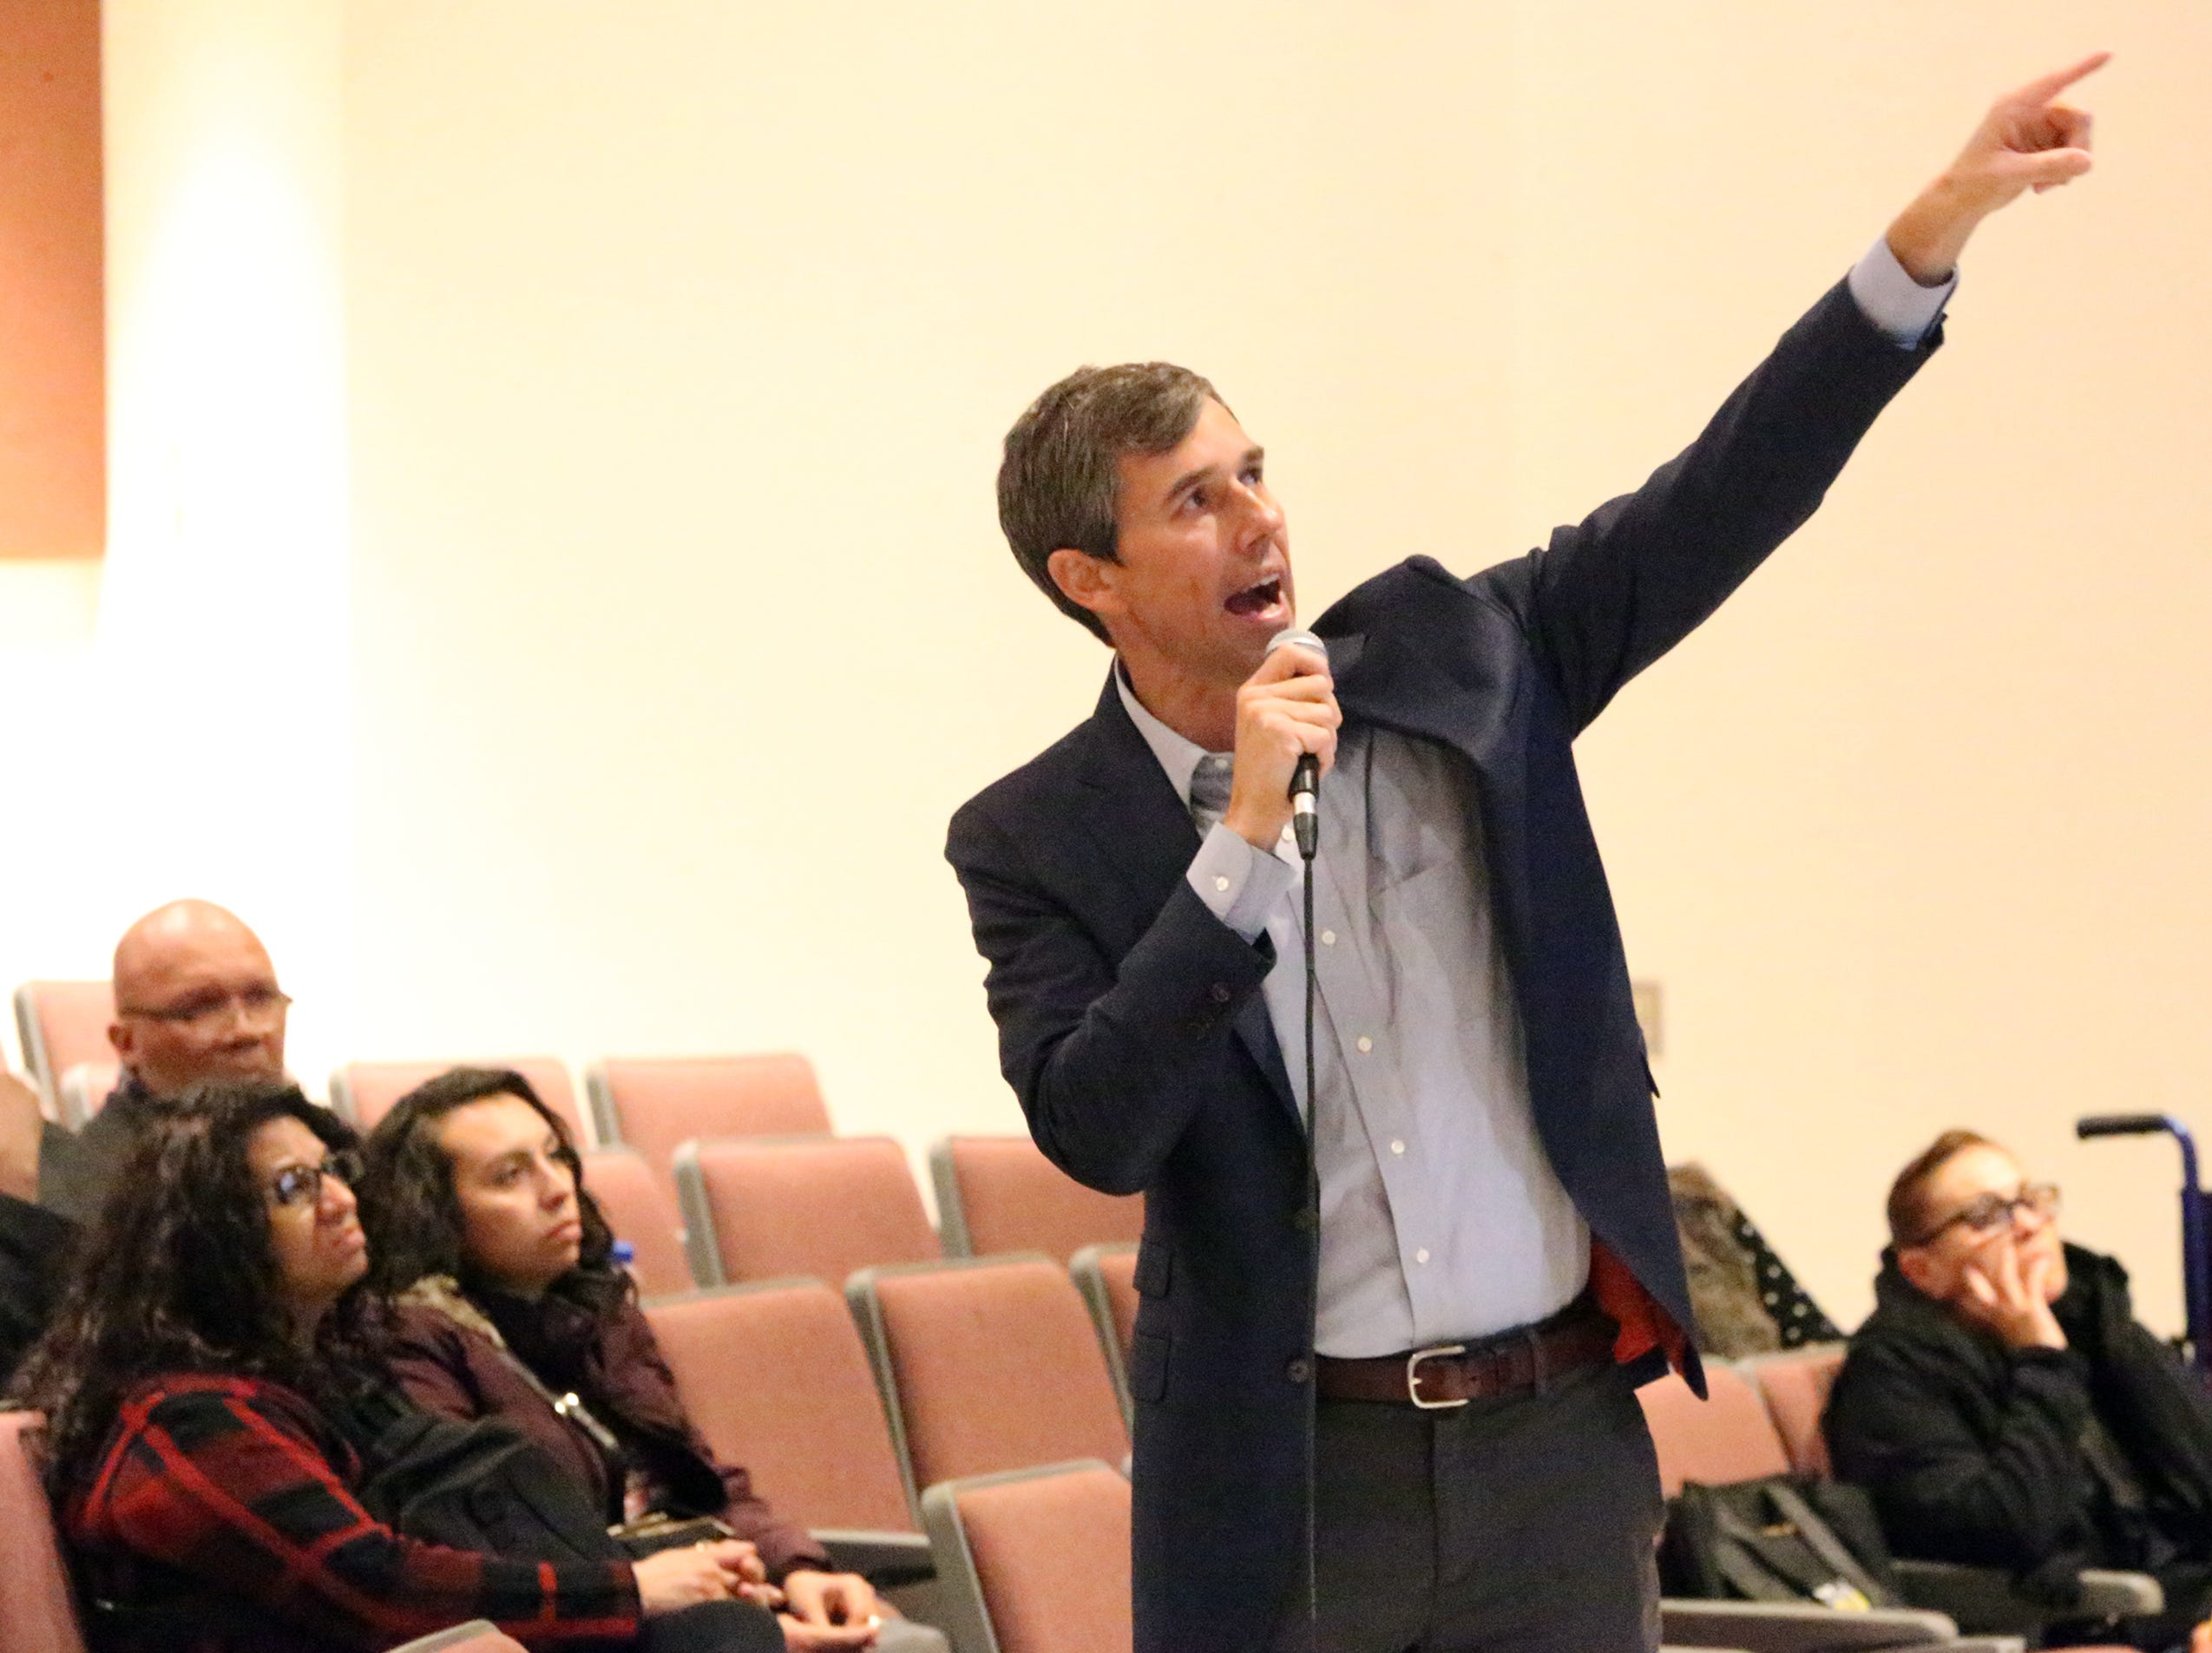 Congressman Beto O'Rourke held his final town hall on veterans issues Friday at Chapin High School.